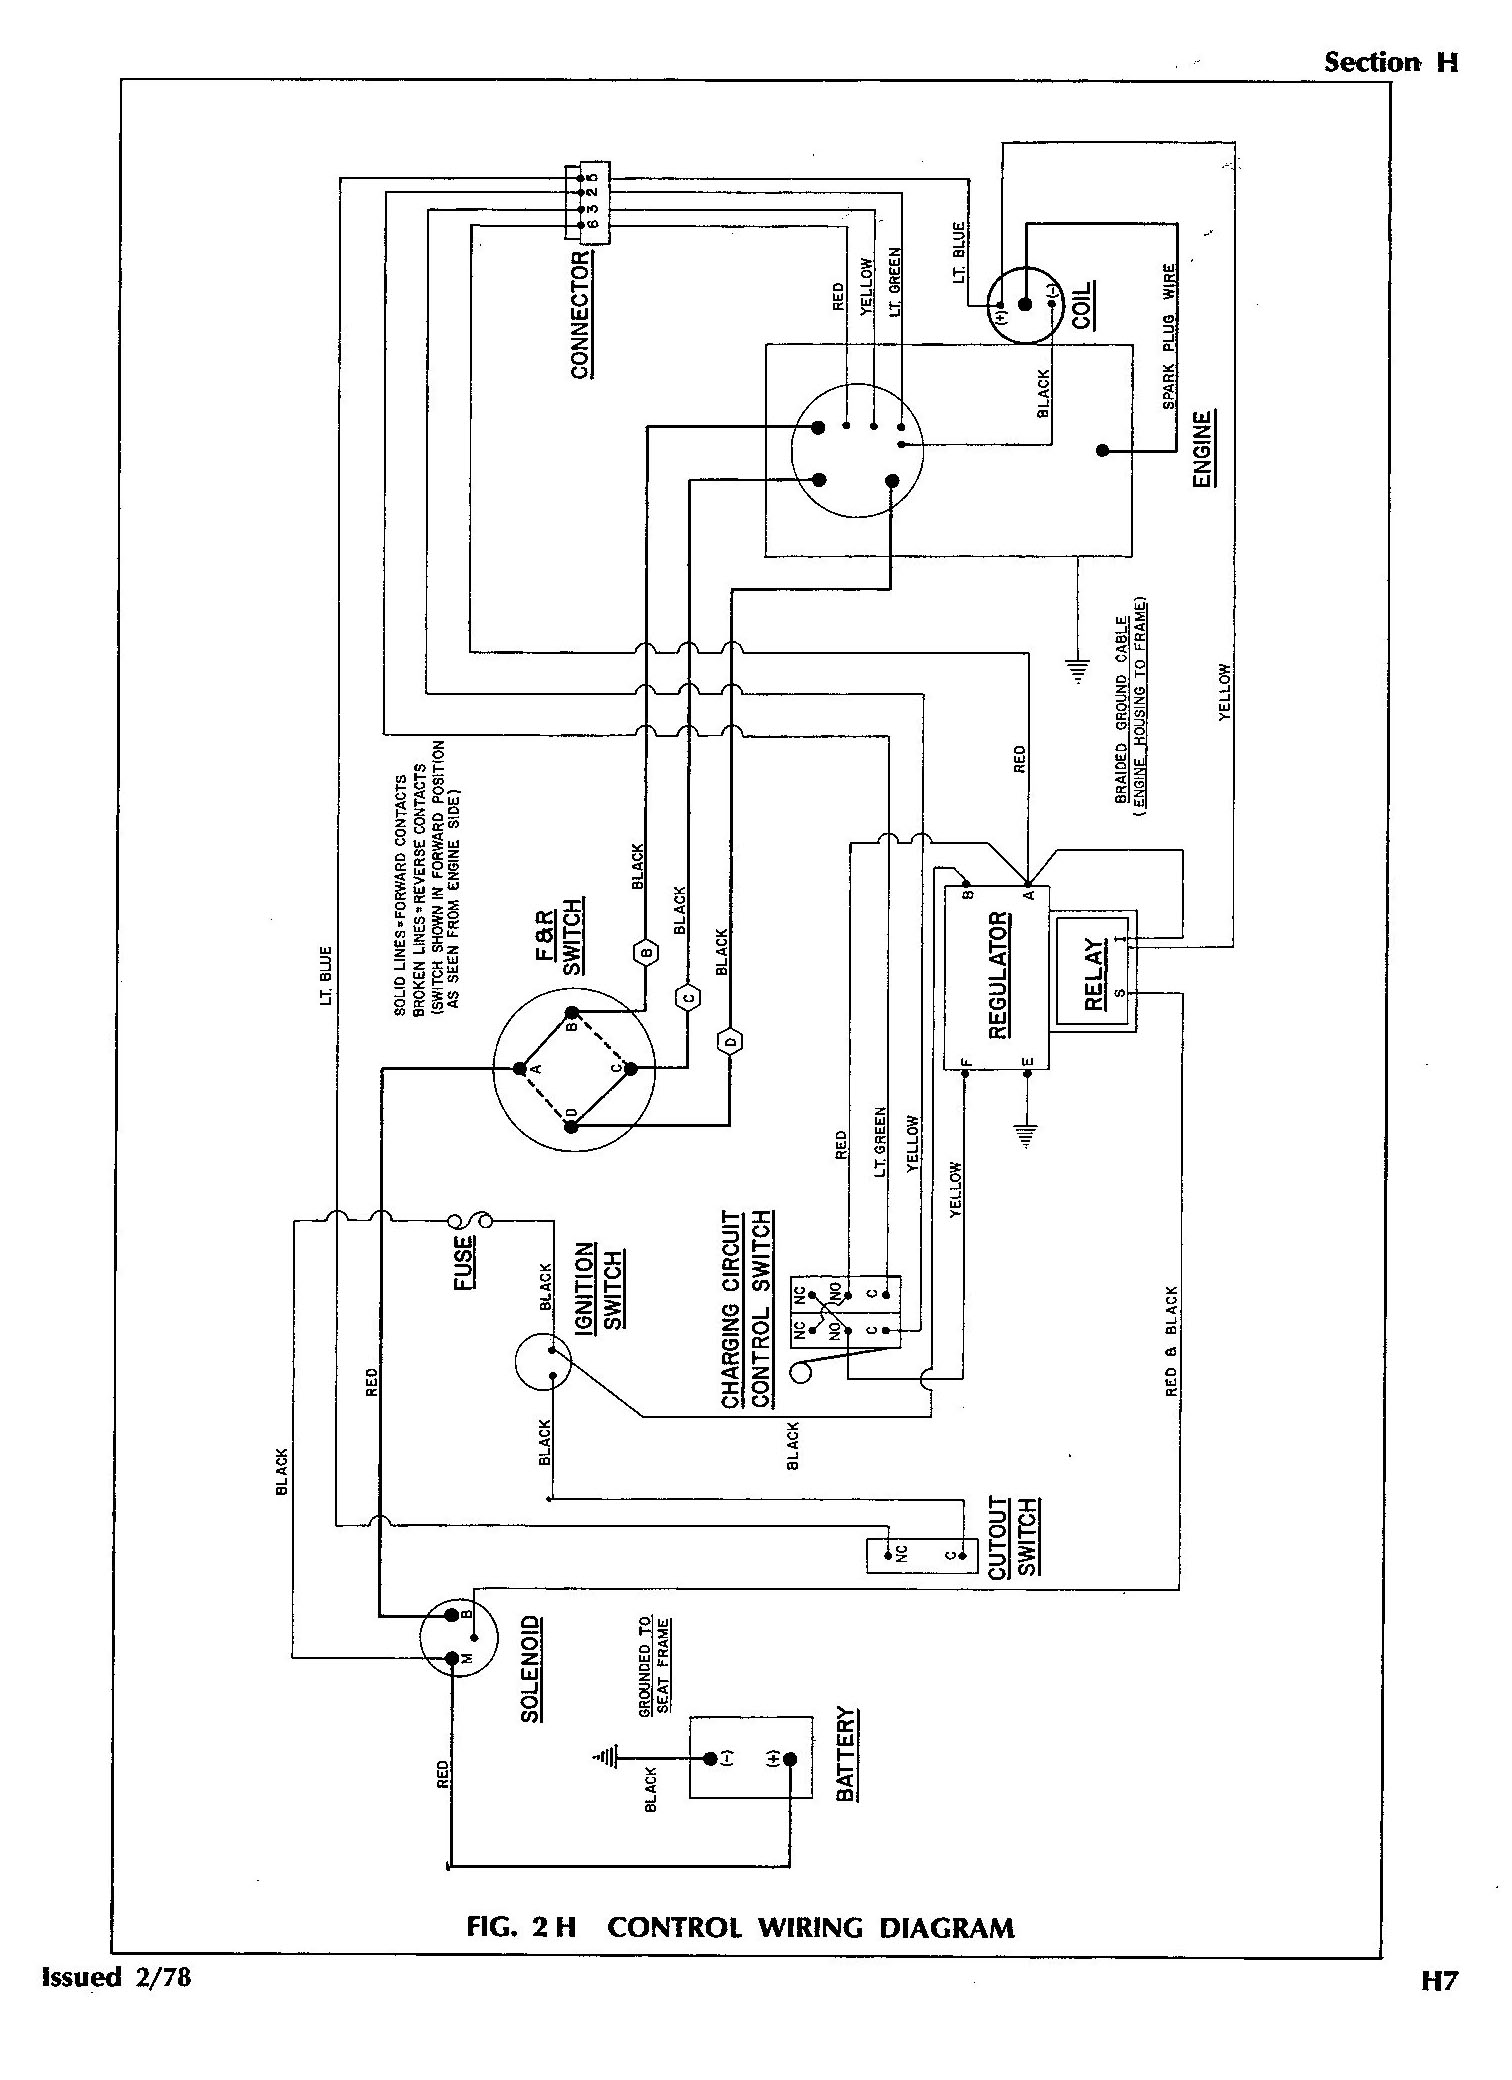 Chevrolet Truck Turn Signal Flasher Location furthermore 1955 Steering Column Wiring Diagram as well 1955 Chevy Bel Air Horn Wiring Diagram additionally Showthread in addition 65 Mustang Ignition Diagram. on 1957 chevy ignition switch wiring diagram